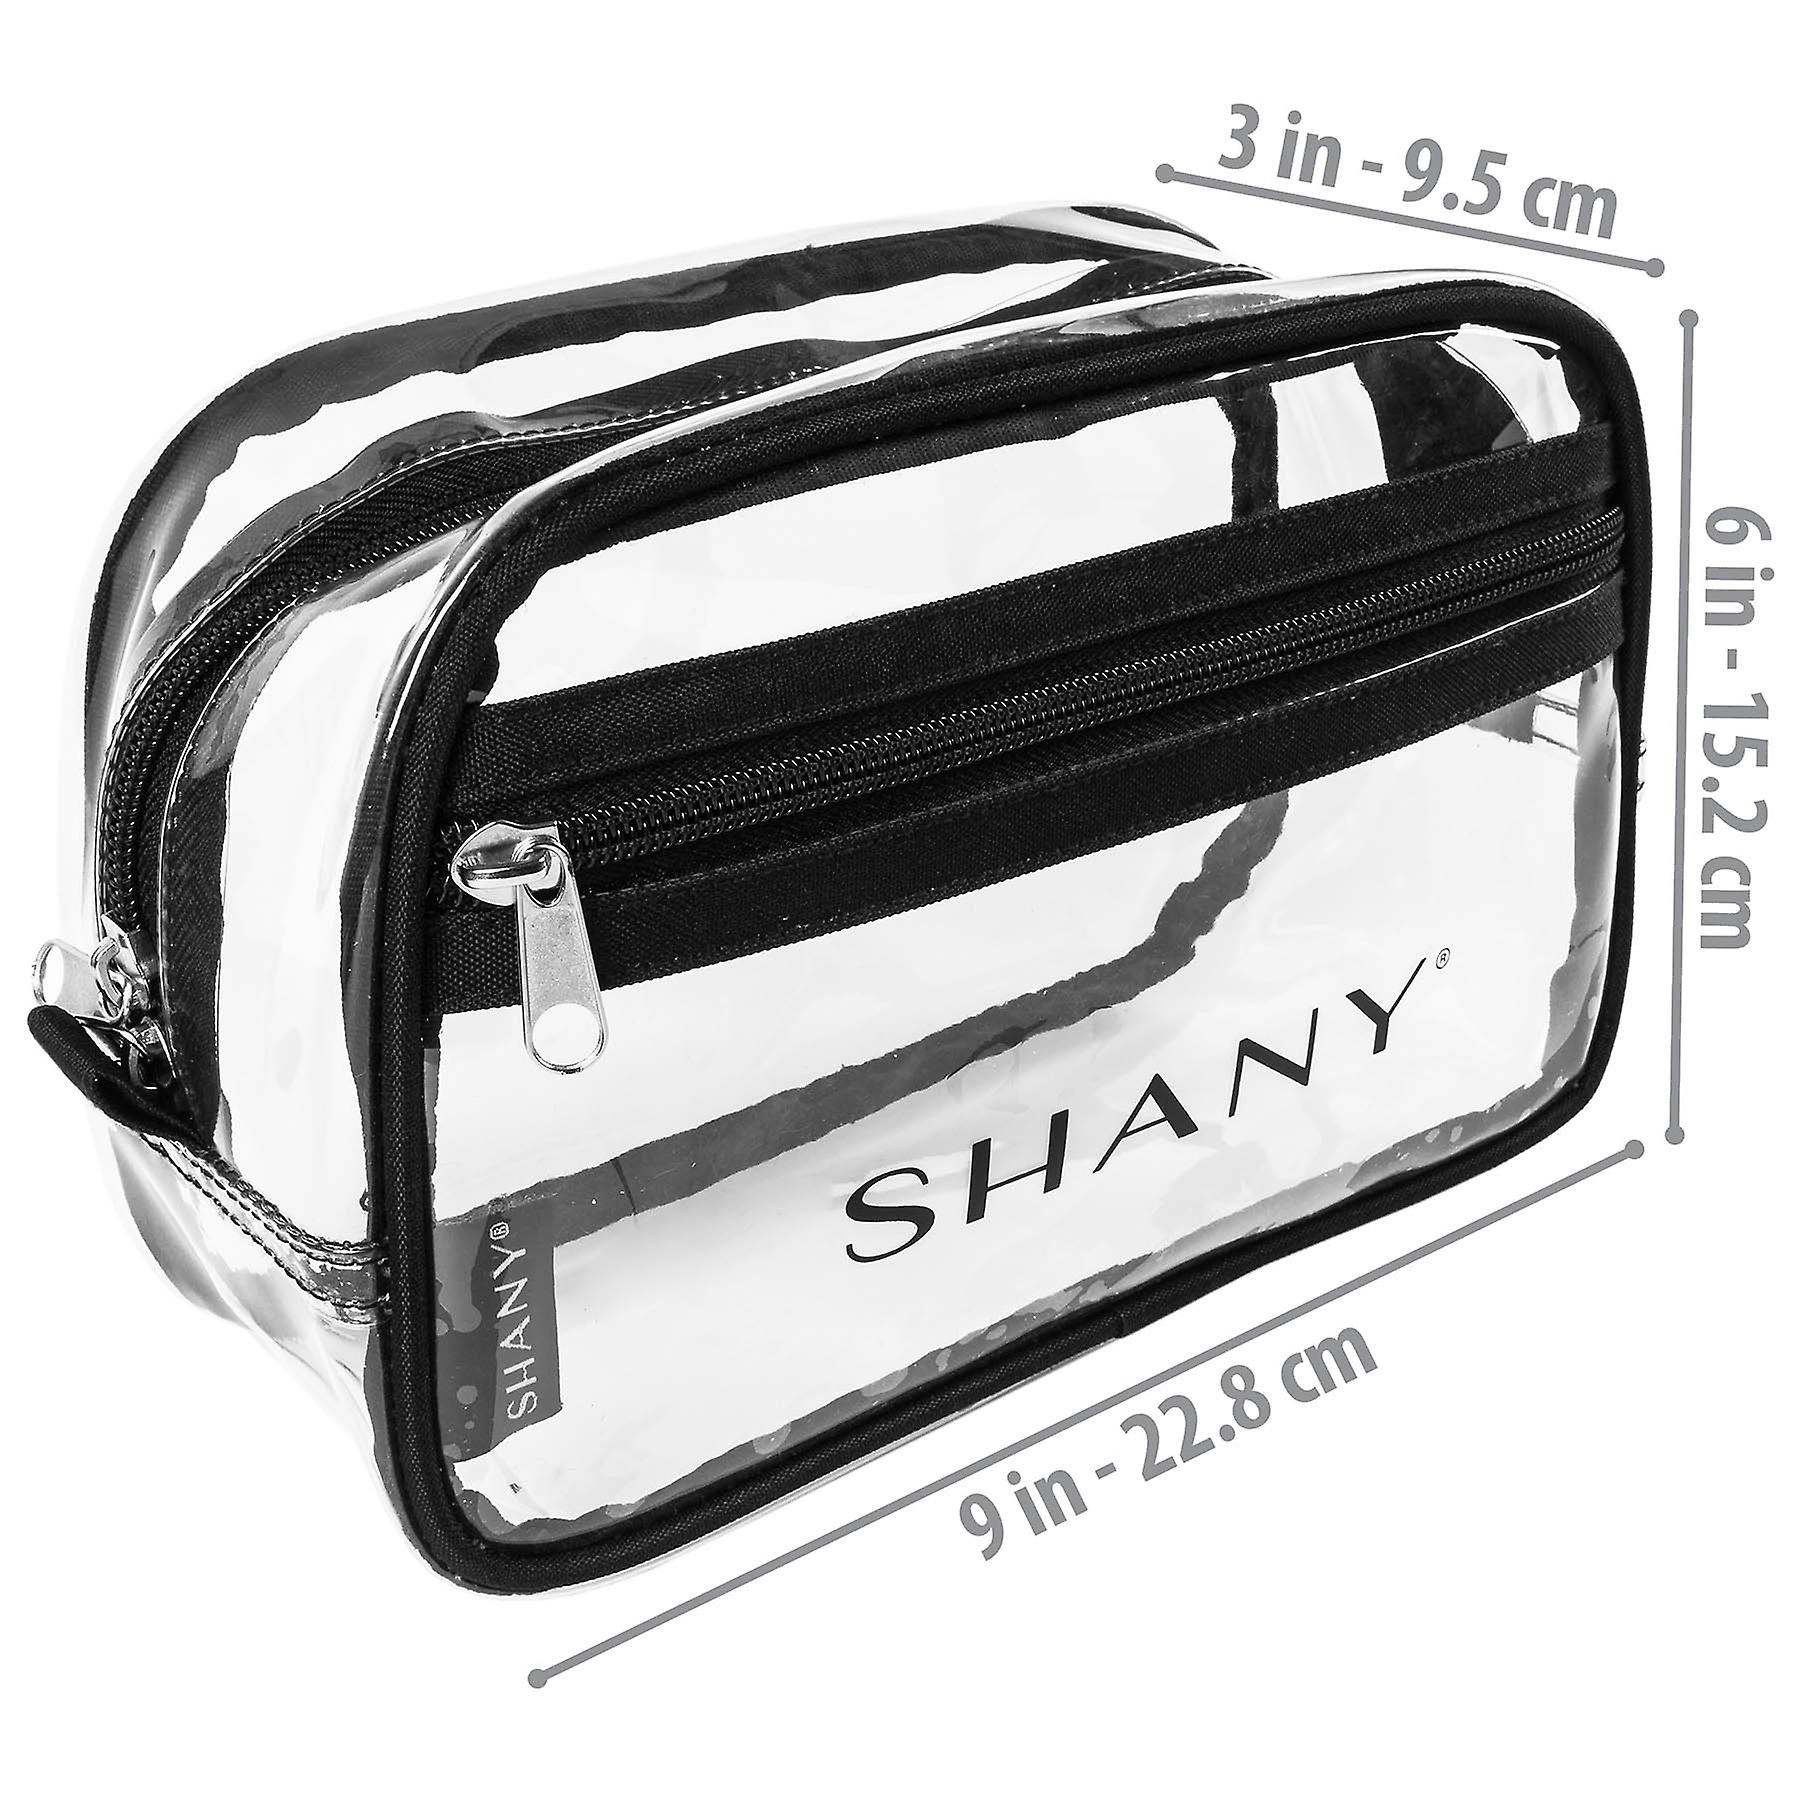 SHANY Clear Toiletry Makeup Carry-On Pouch with Zippered Compartment – Water-Resistant and Nontoxic Travel Organizer Bag